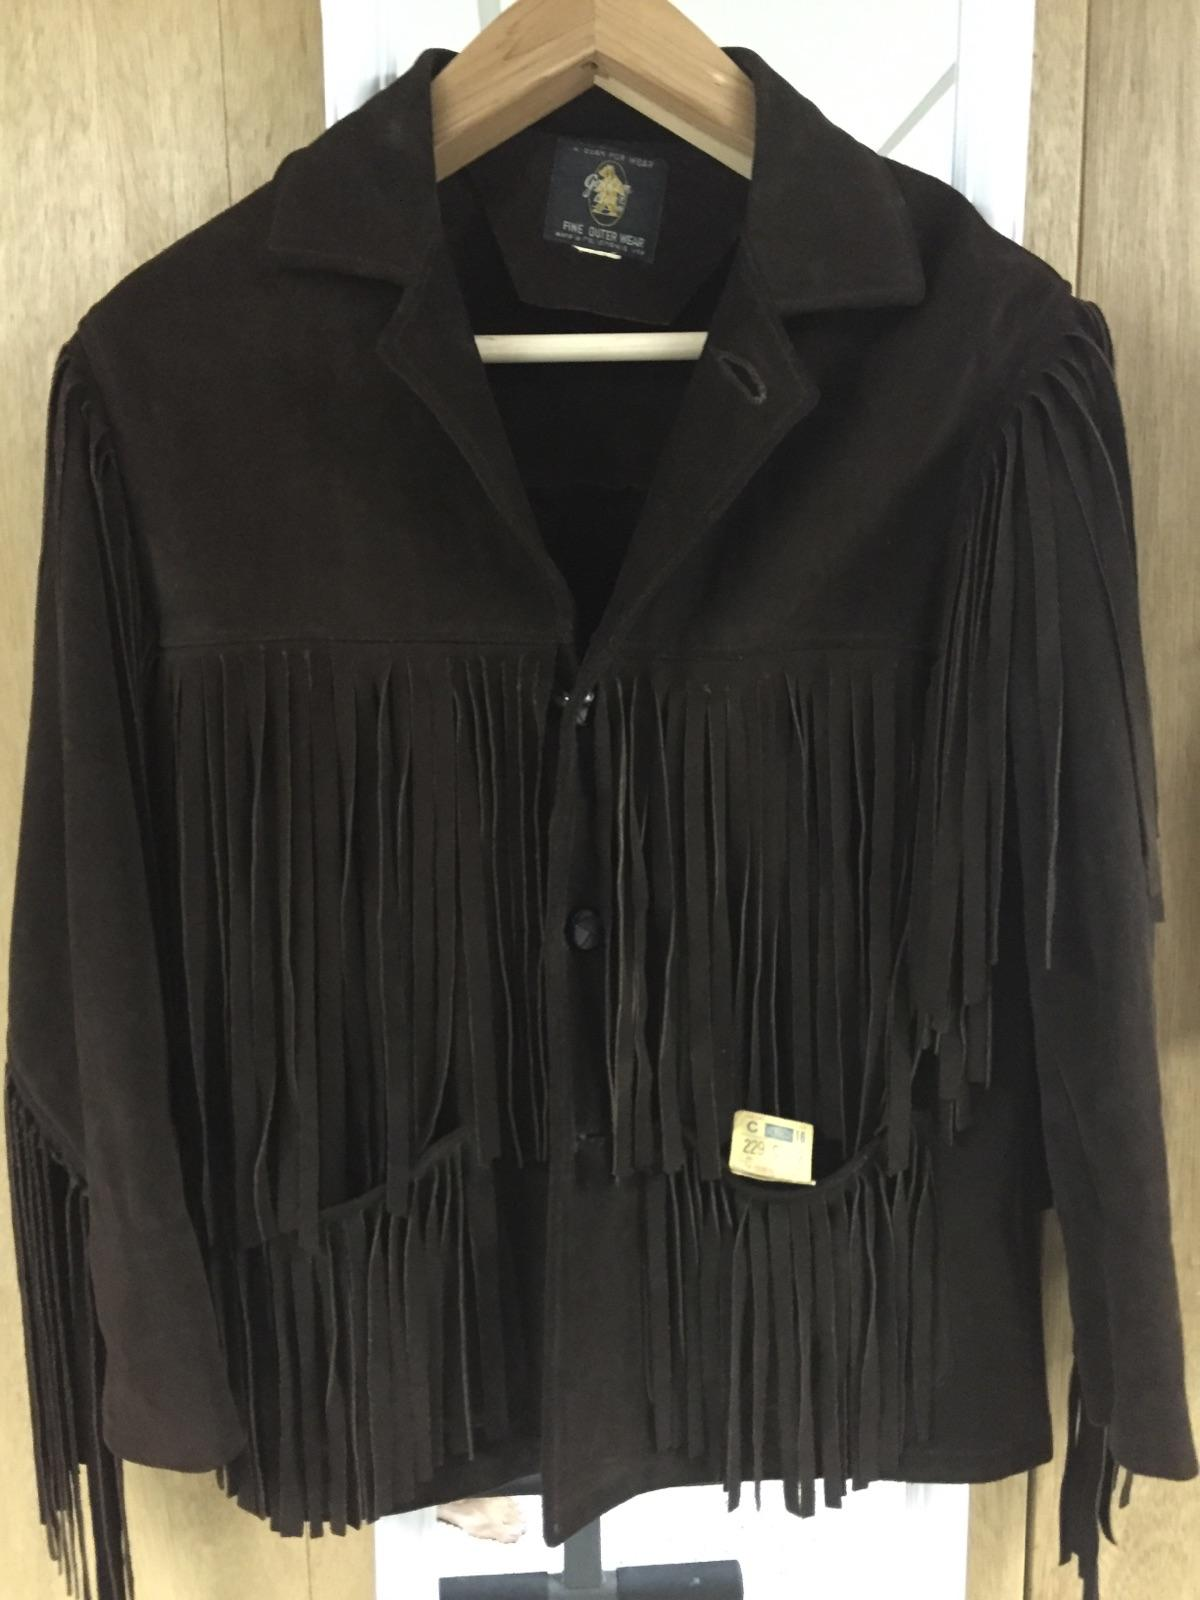 A fringe jacket with a little history